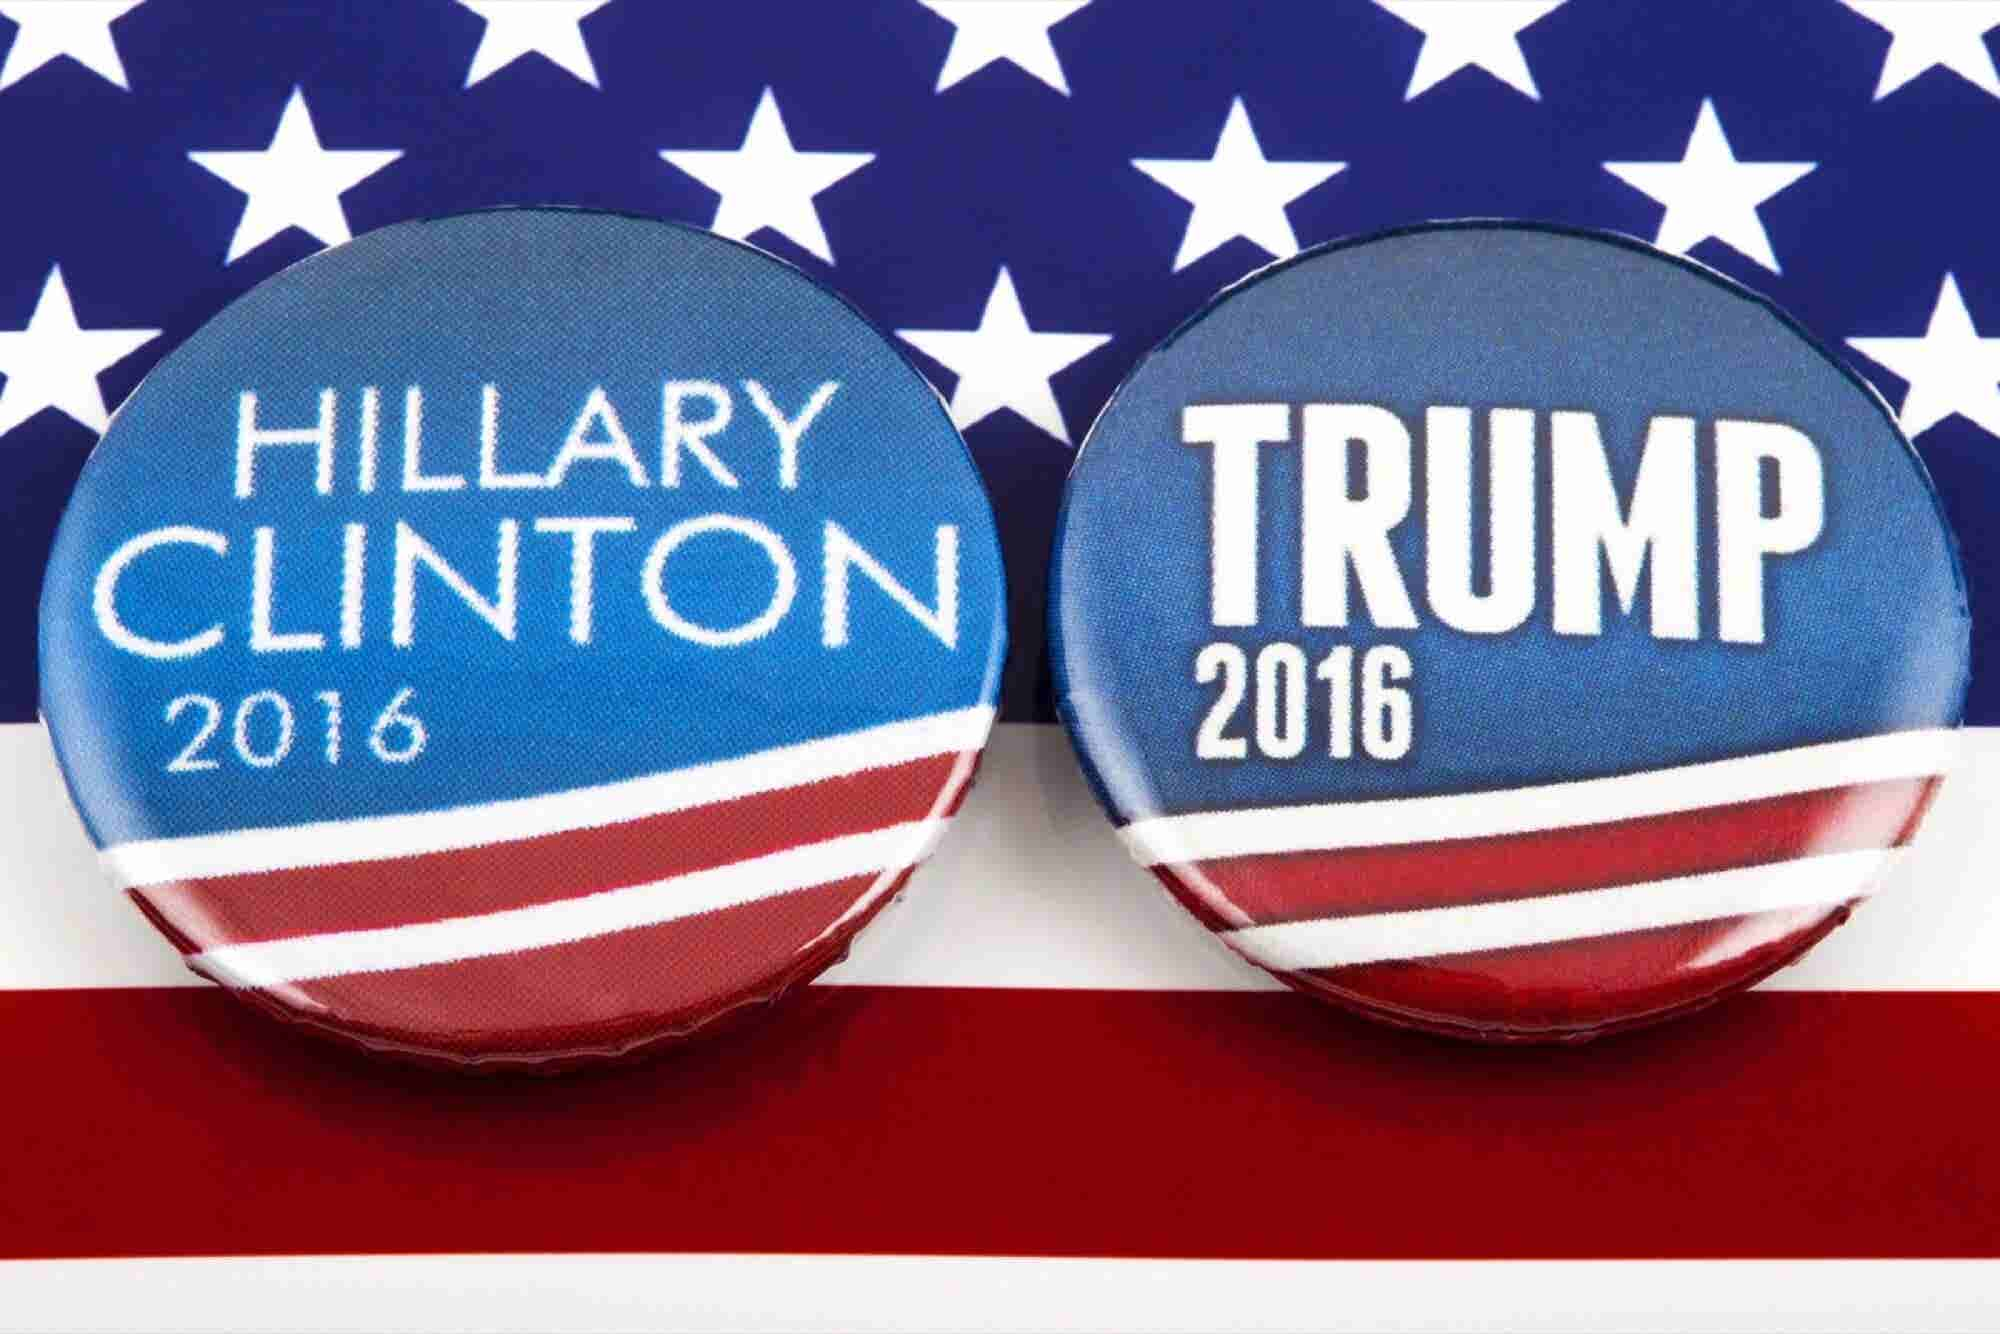 Trump vs. Clinton -- Hot Topics That Will Affect The Average American